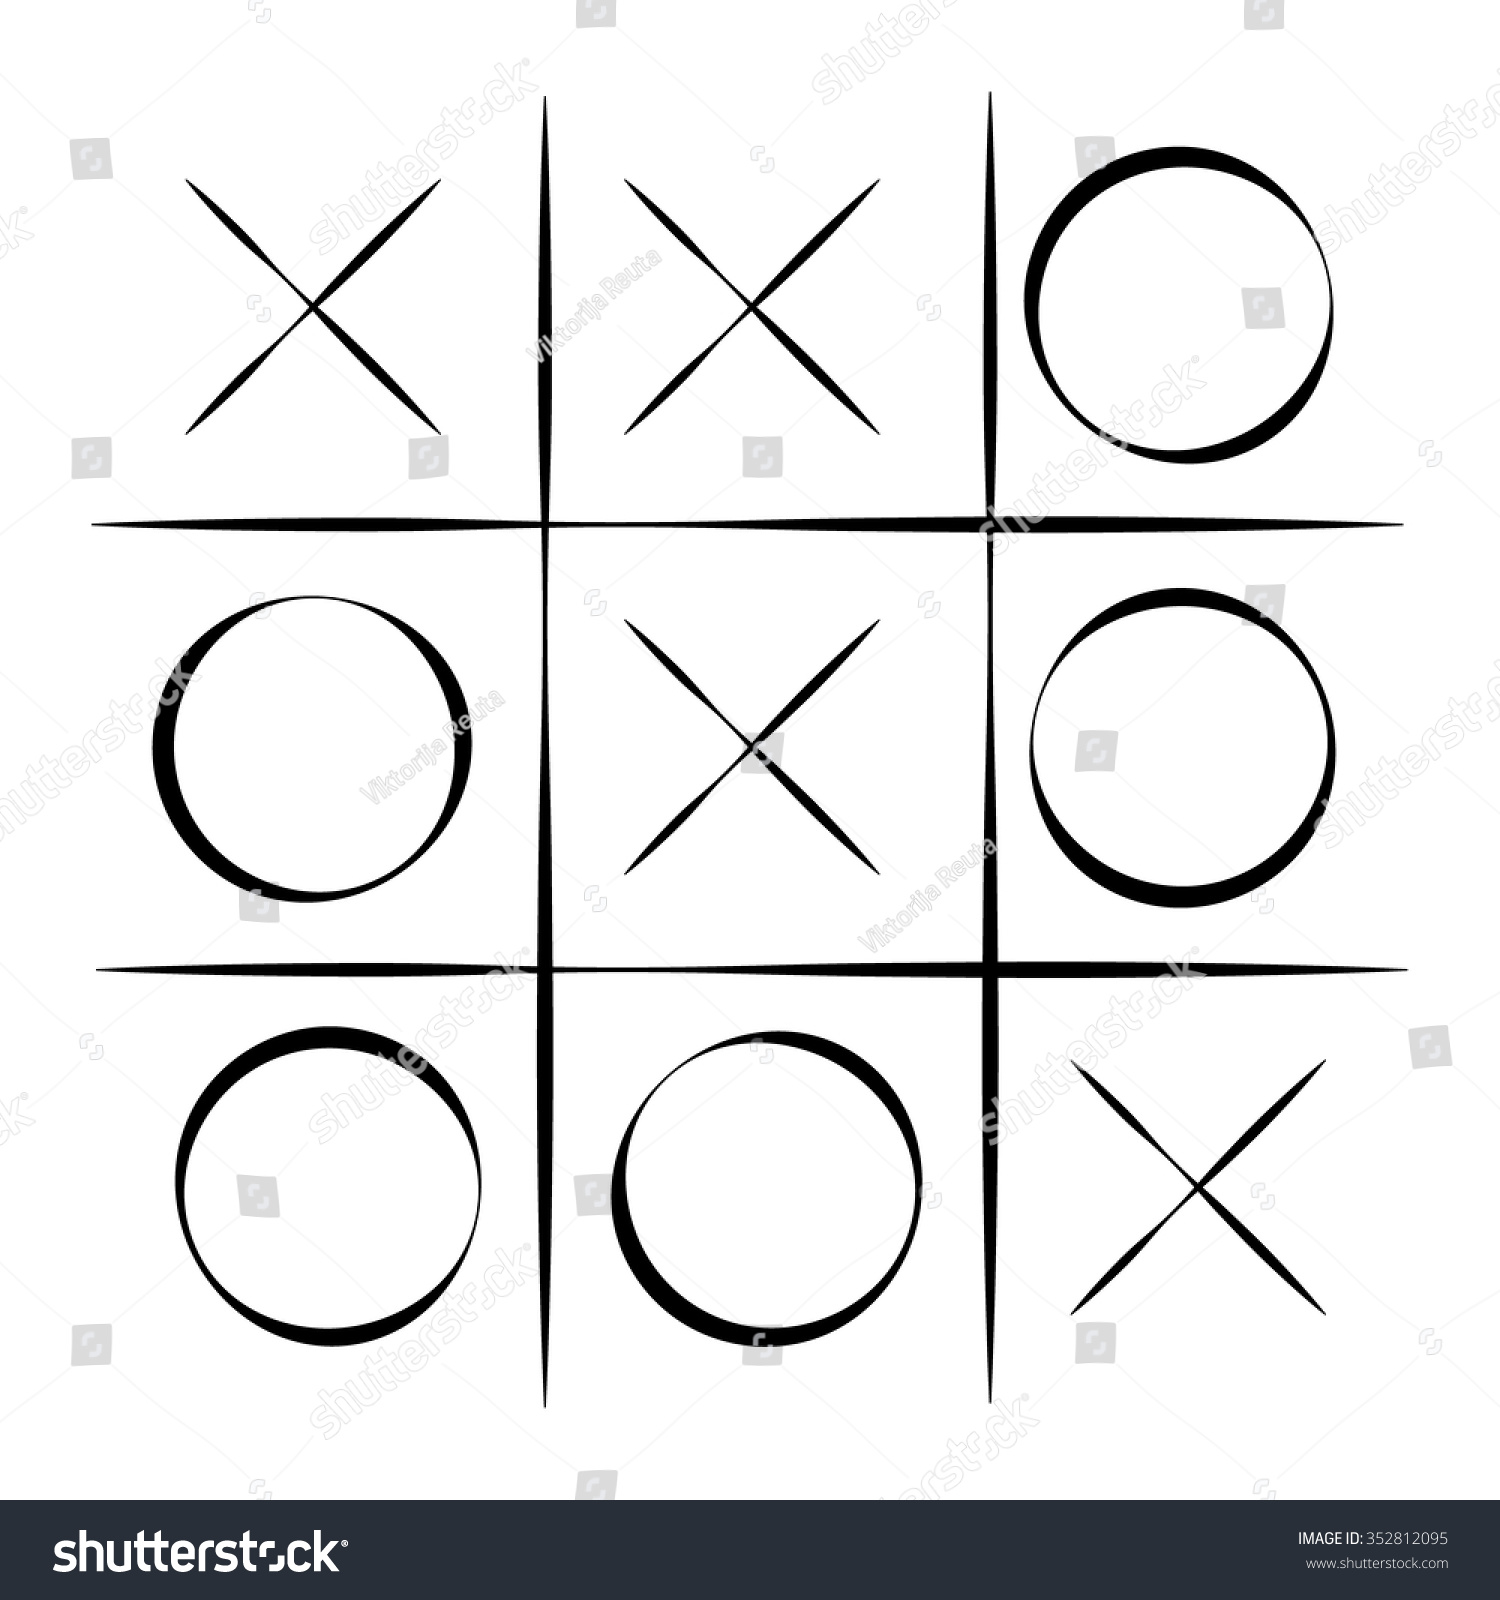 Vector Illustration Tic Tac Toe Simple Stock Vector 352812095 ...